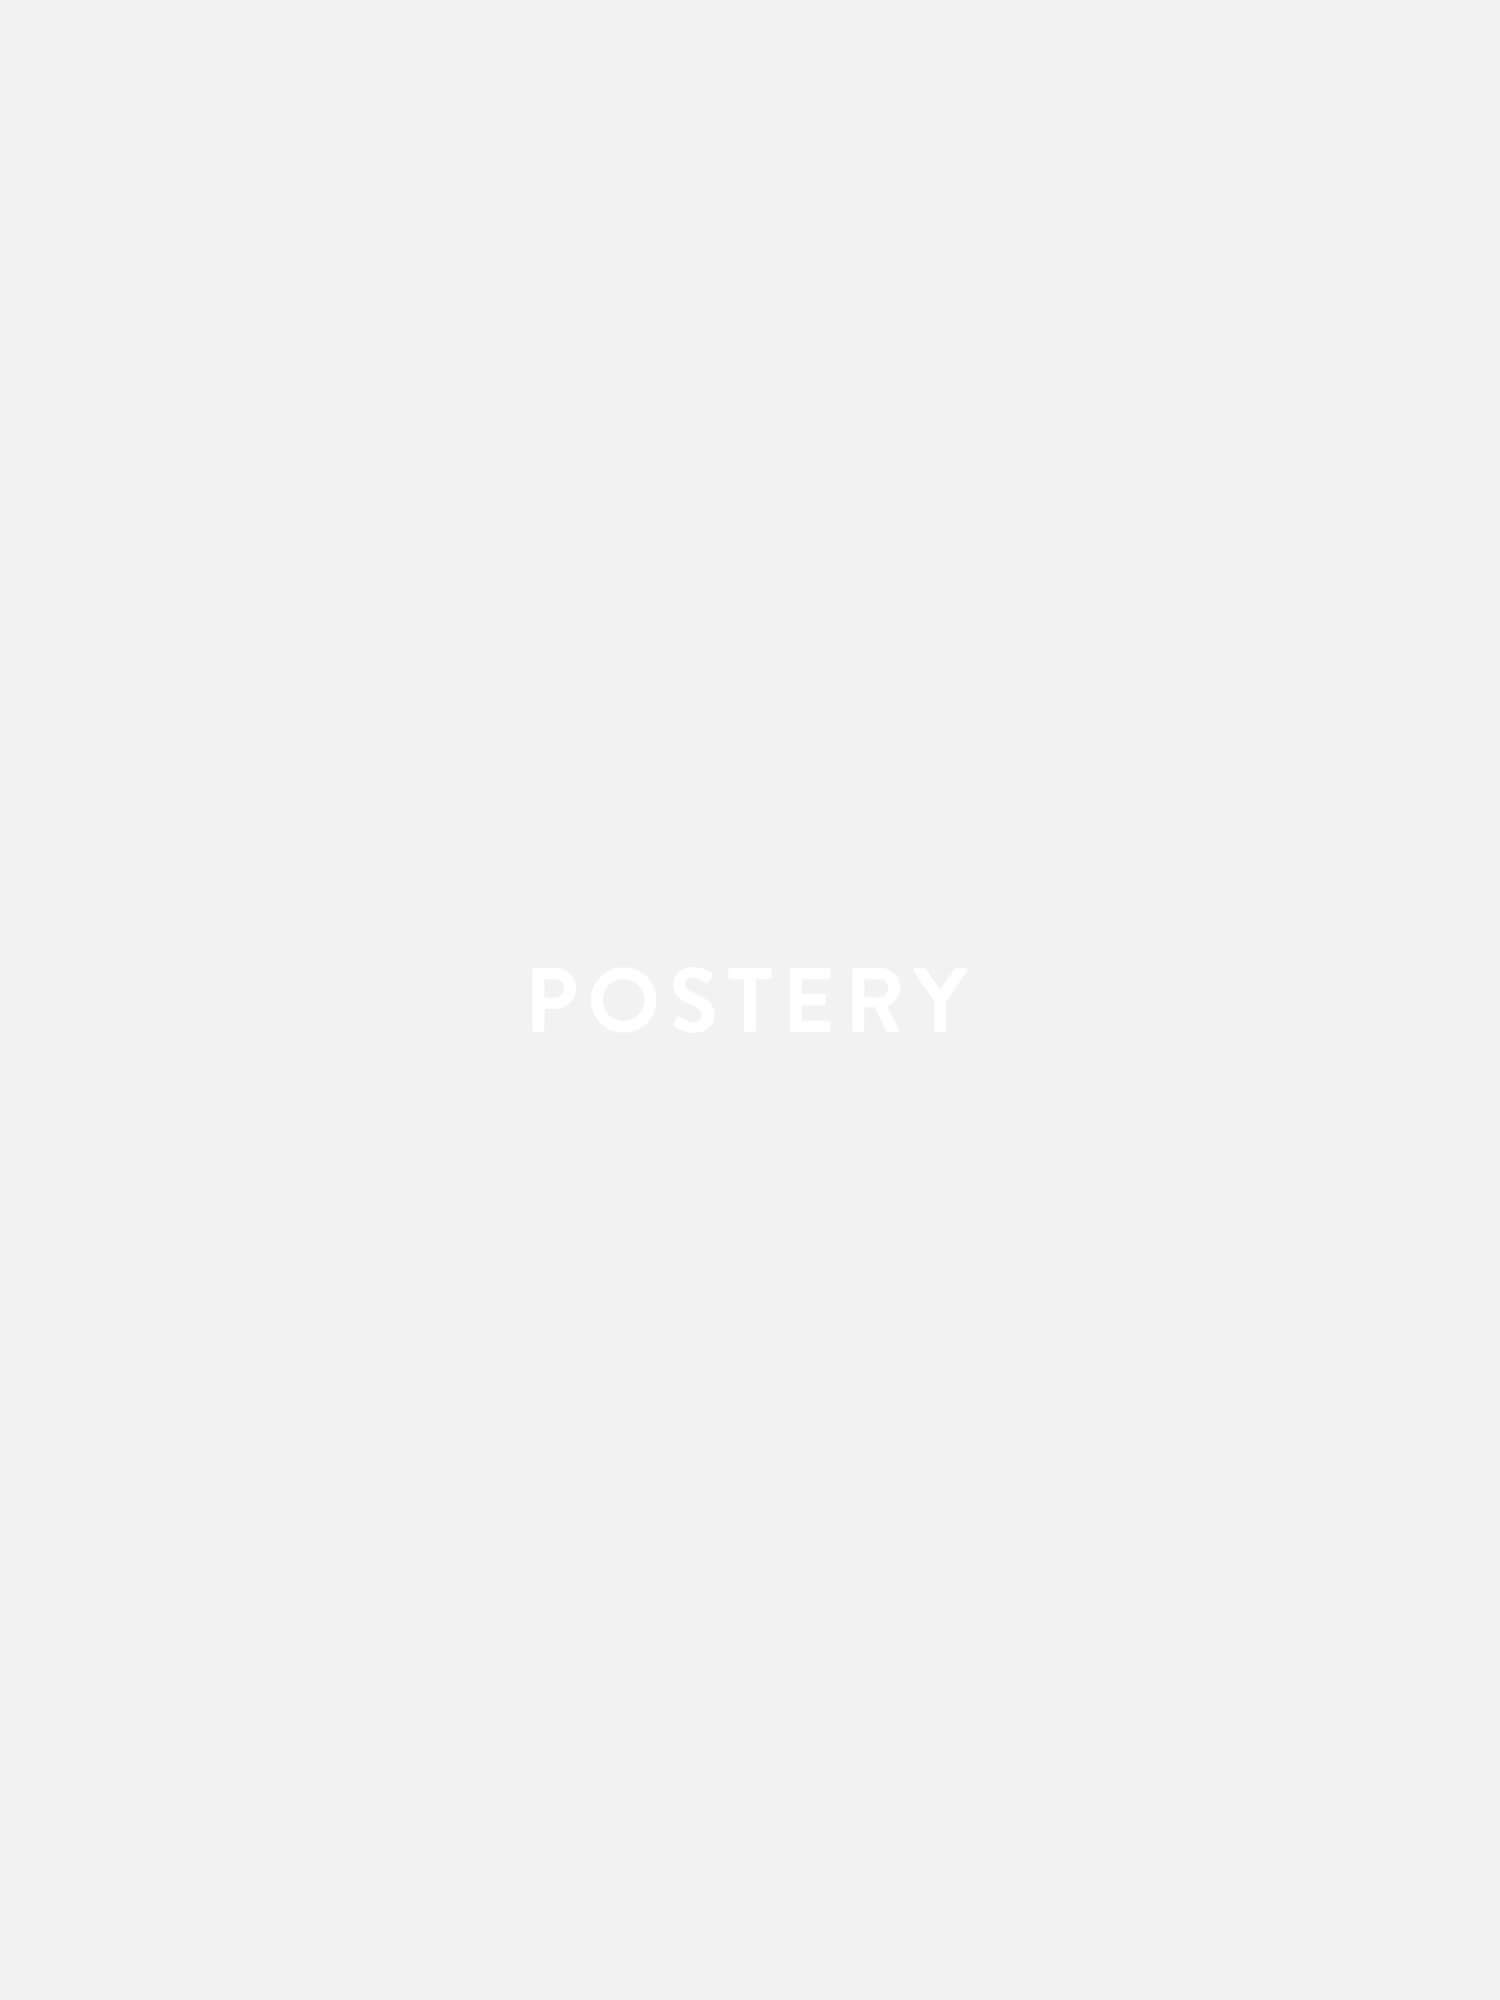 Cheetah Family Poster